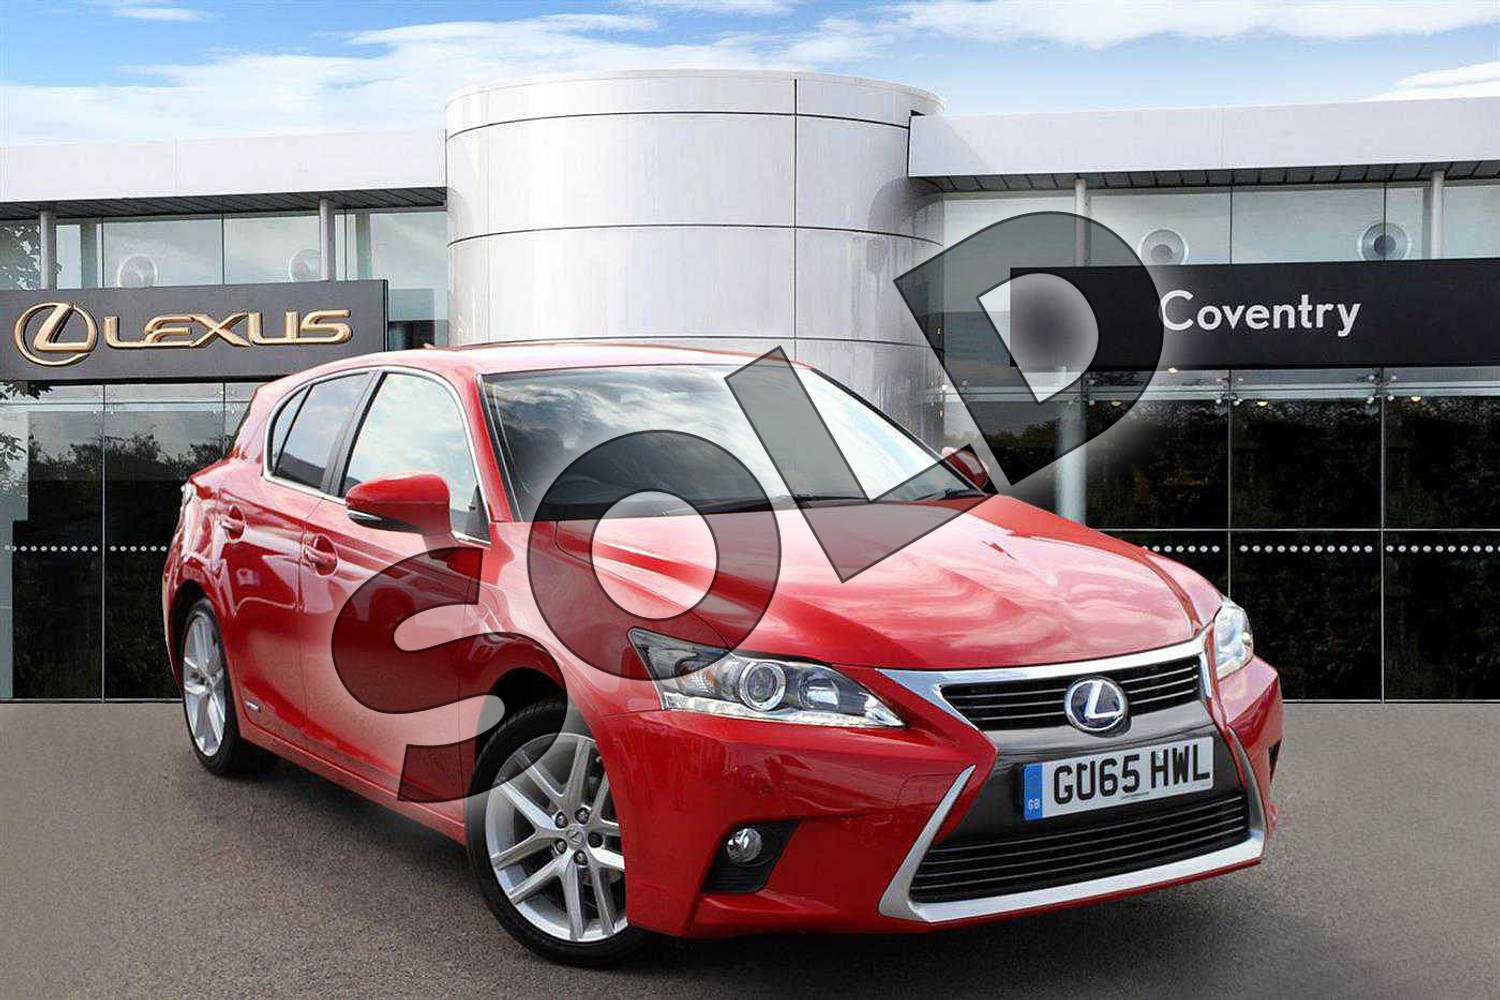 2015 Lexus CT Hatchback 200h 1.8 Advance 5dr CVT Auto in Fuji Red at Lexus Coventry